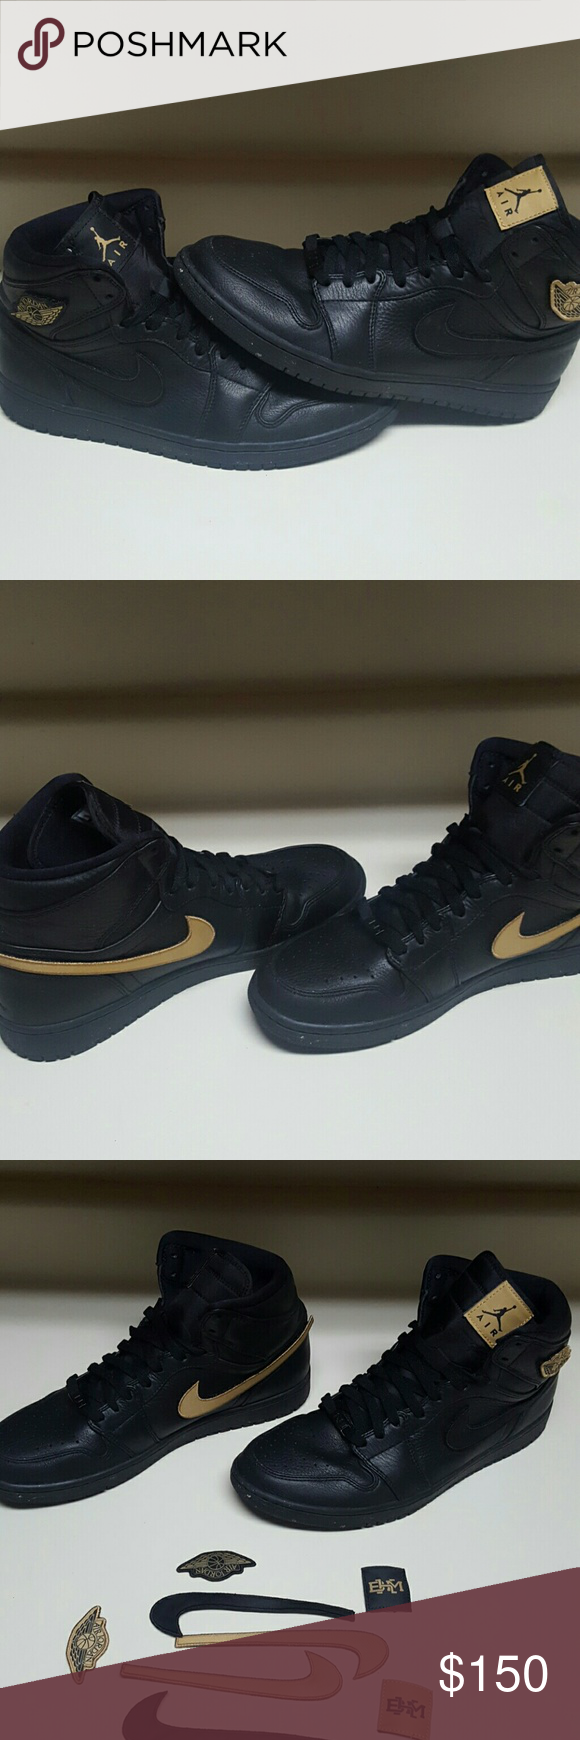 a5b38e71825 Air Jordan 1 Retro High BHM Size 11 Air Jordan 1 | Black && Metallic Gold  Colorway | Changeable Velcro Decals | 10/10 Condition | Will ship with box!